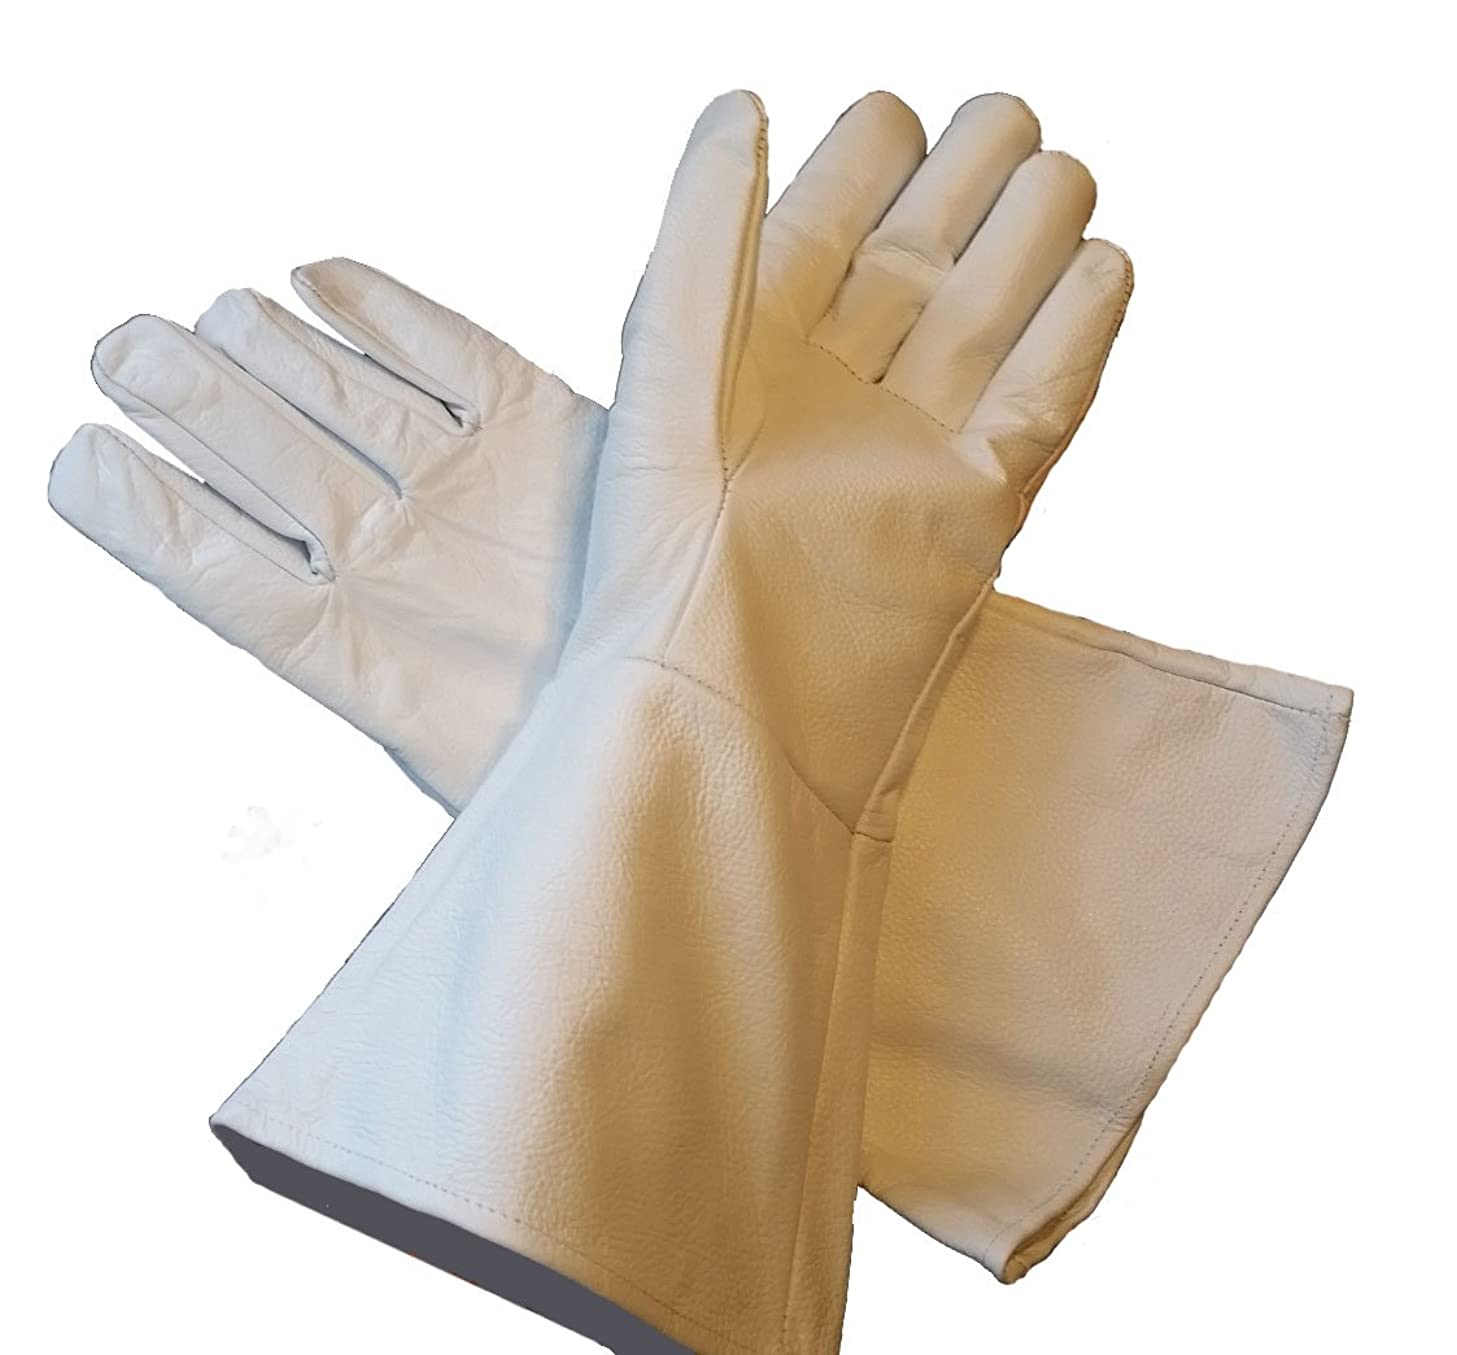 Leather Gauntlet Gloves White Large Long Arm Cuff